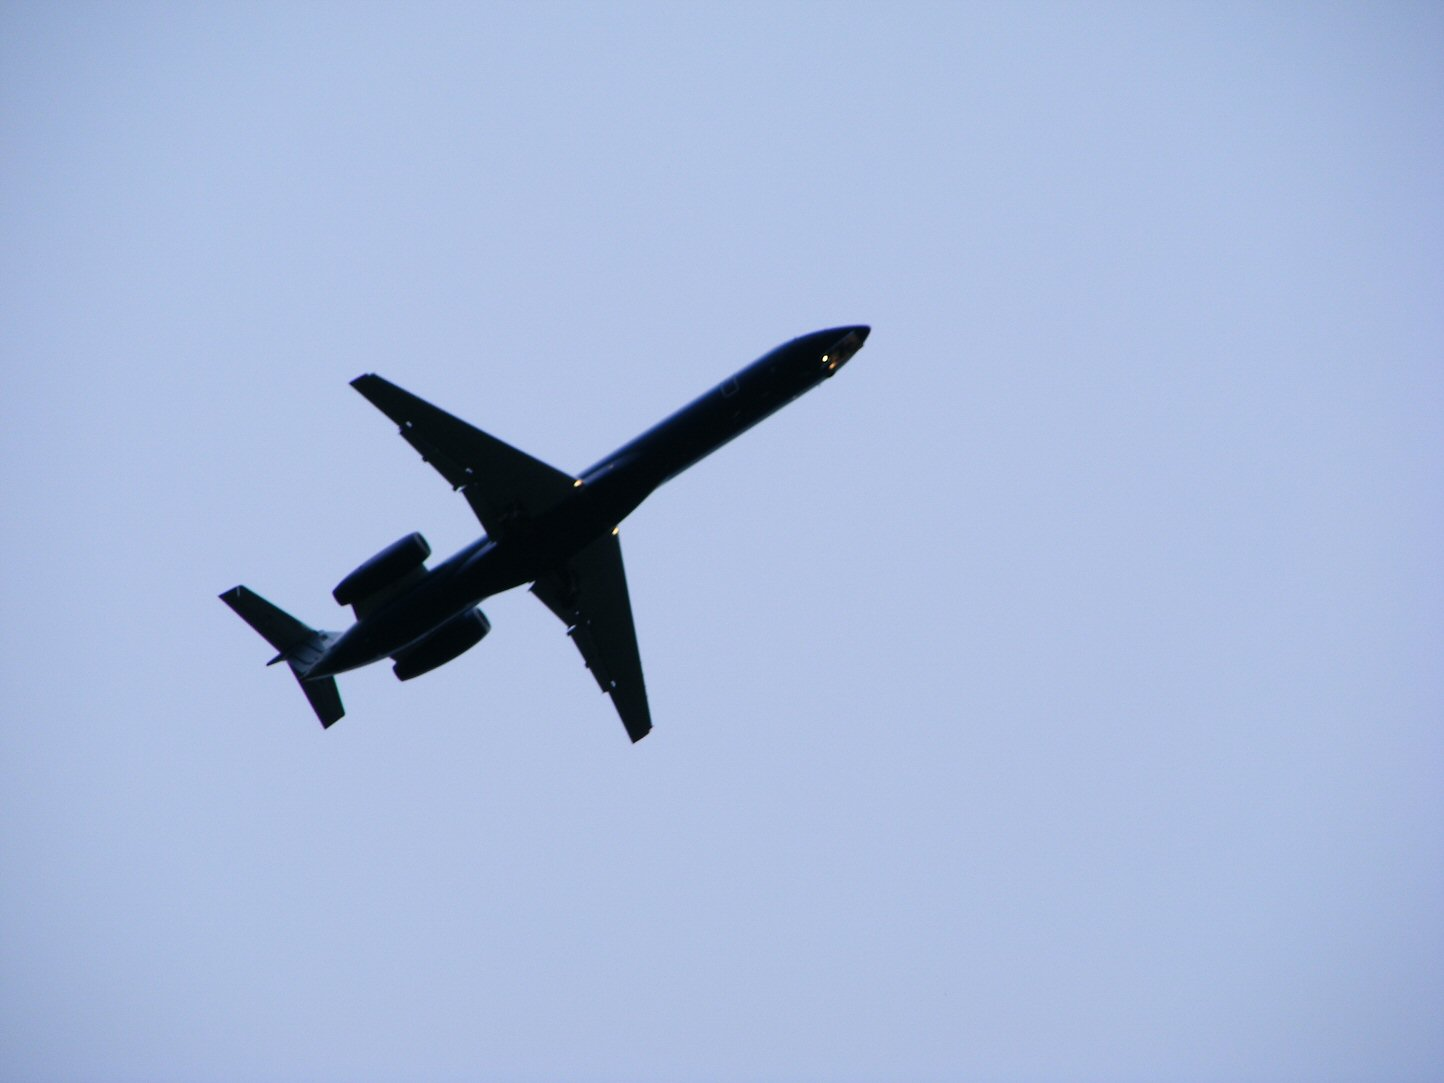 Zoom of Airplane from the Ground on Bright Blue Skies